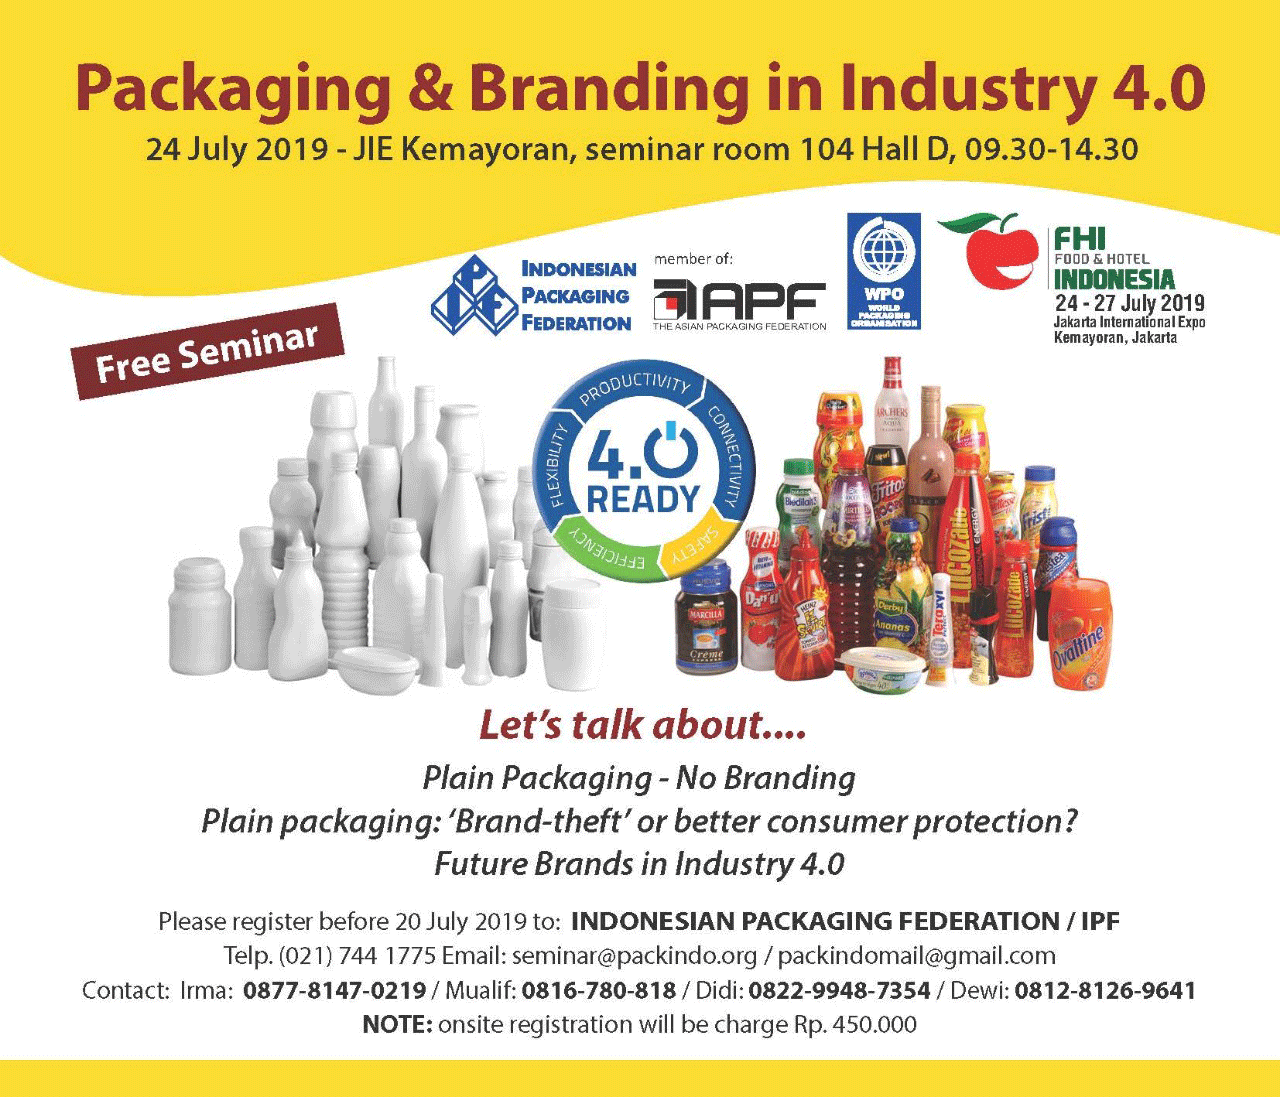 Indonesian Packaging Federation – Member of Asian Packaging